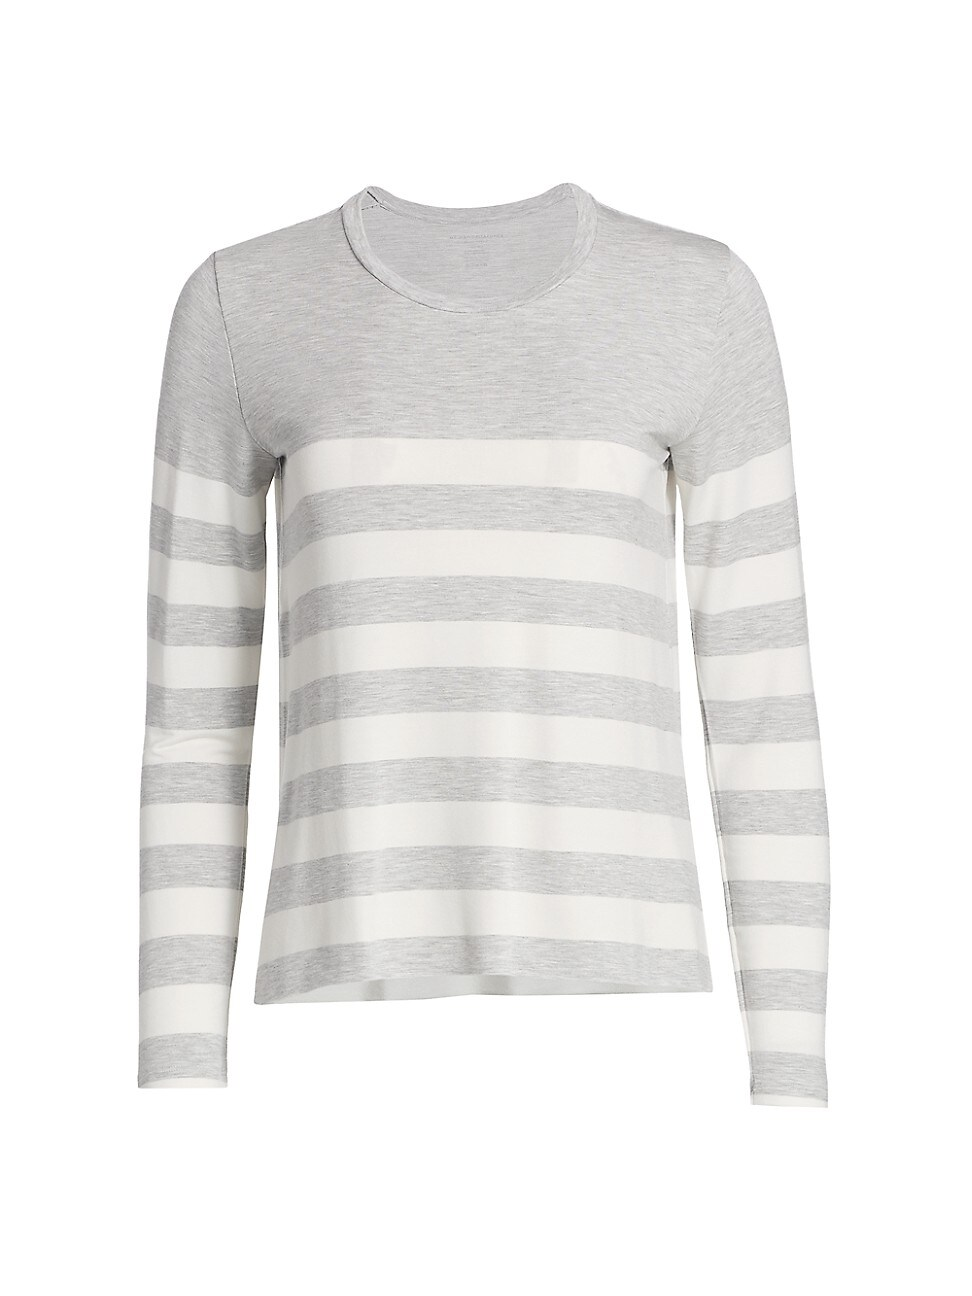 Majestic WOMEN'S FRENCH TERRY LONG-SLEEVE TOP